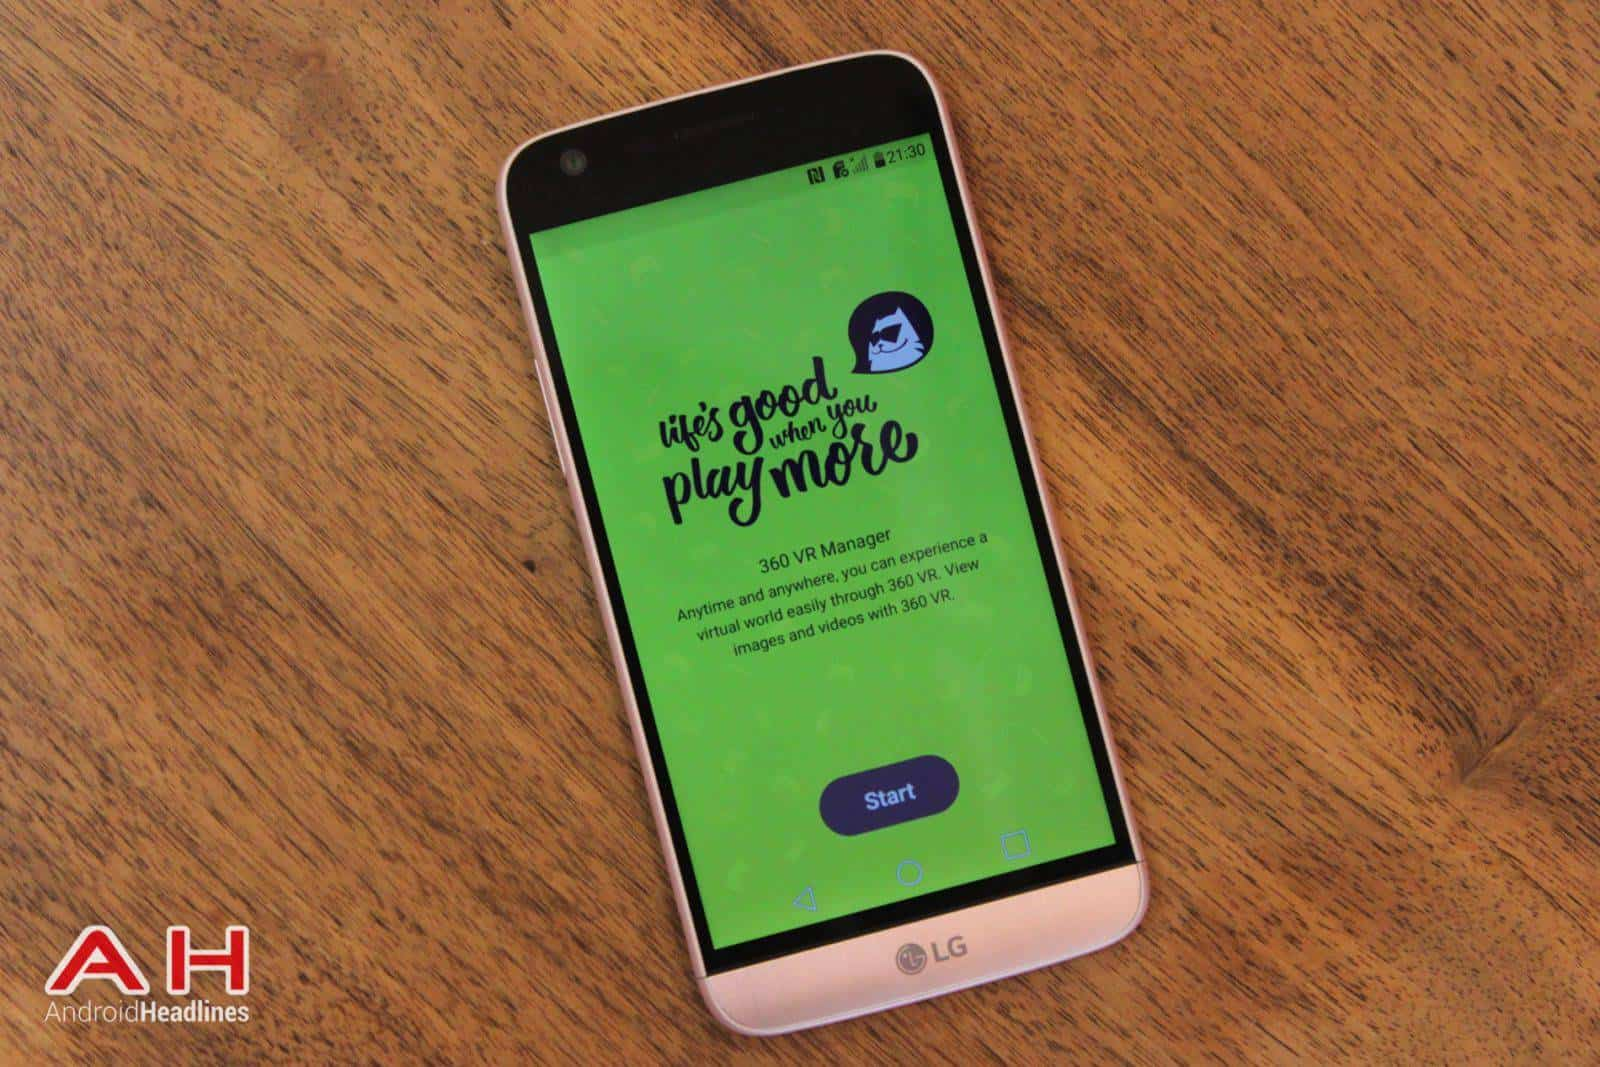 LG G5 Hands On MWC AH 25